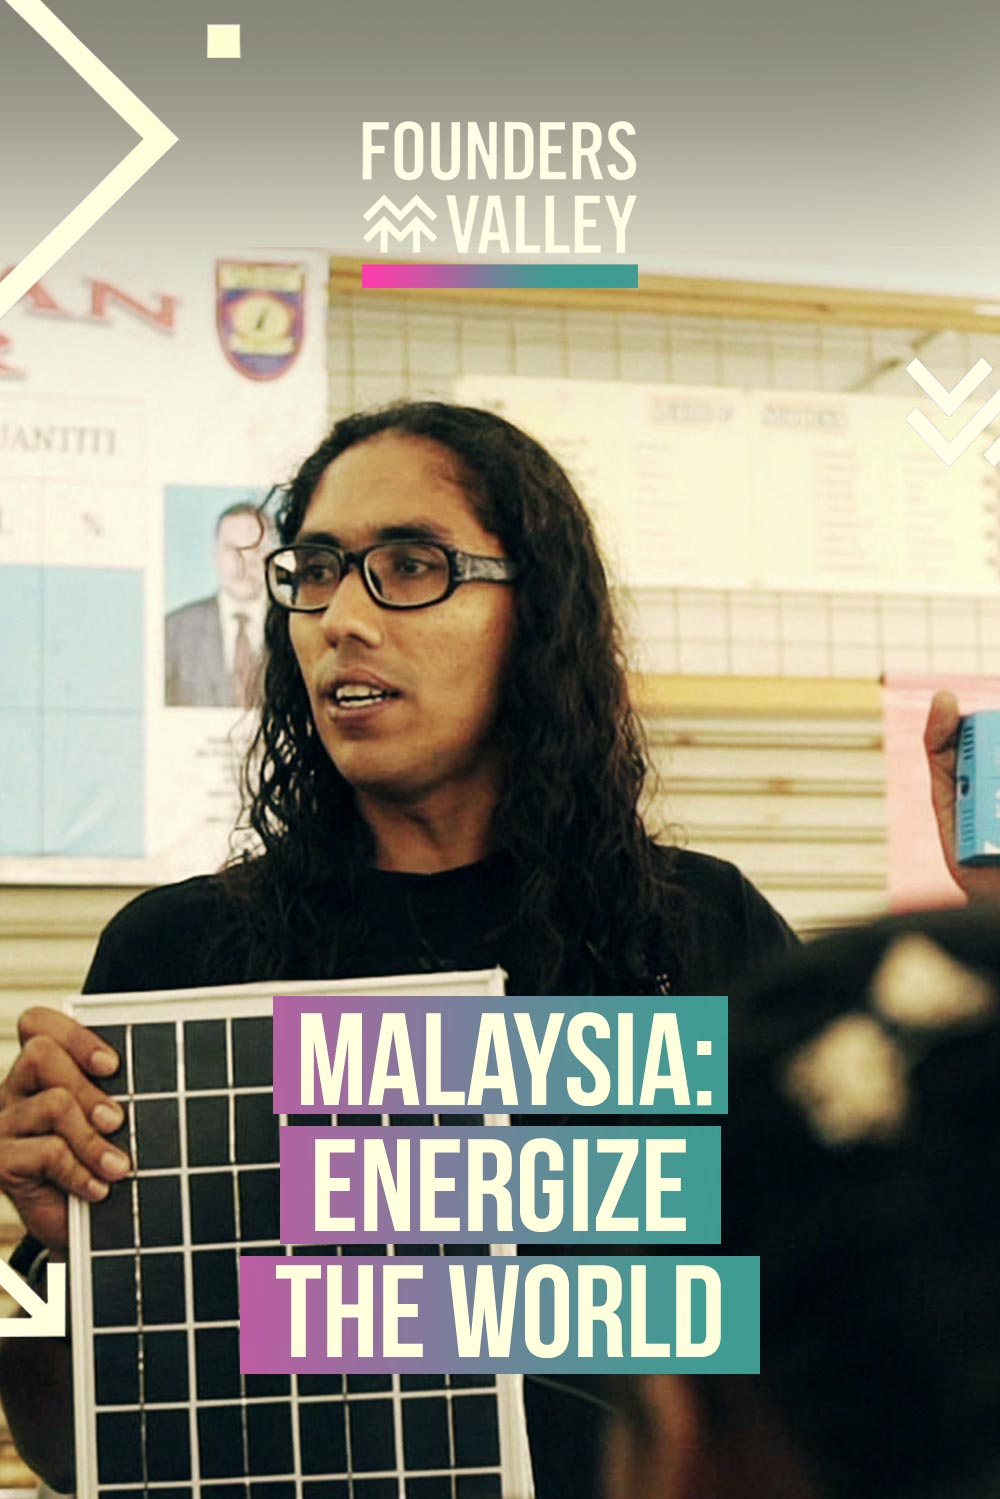 Founders' Valley: Energize the World, Malaysia